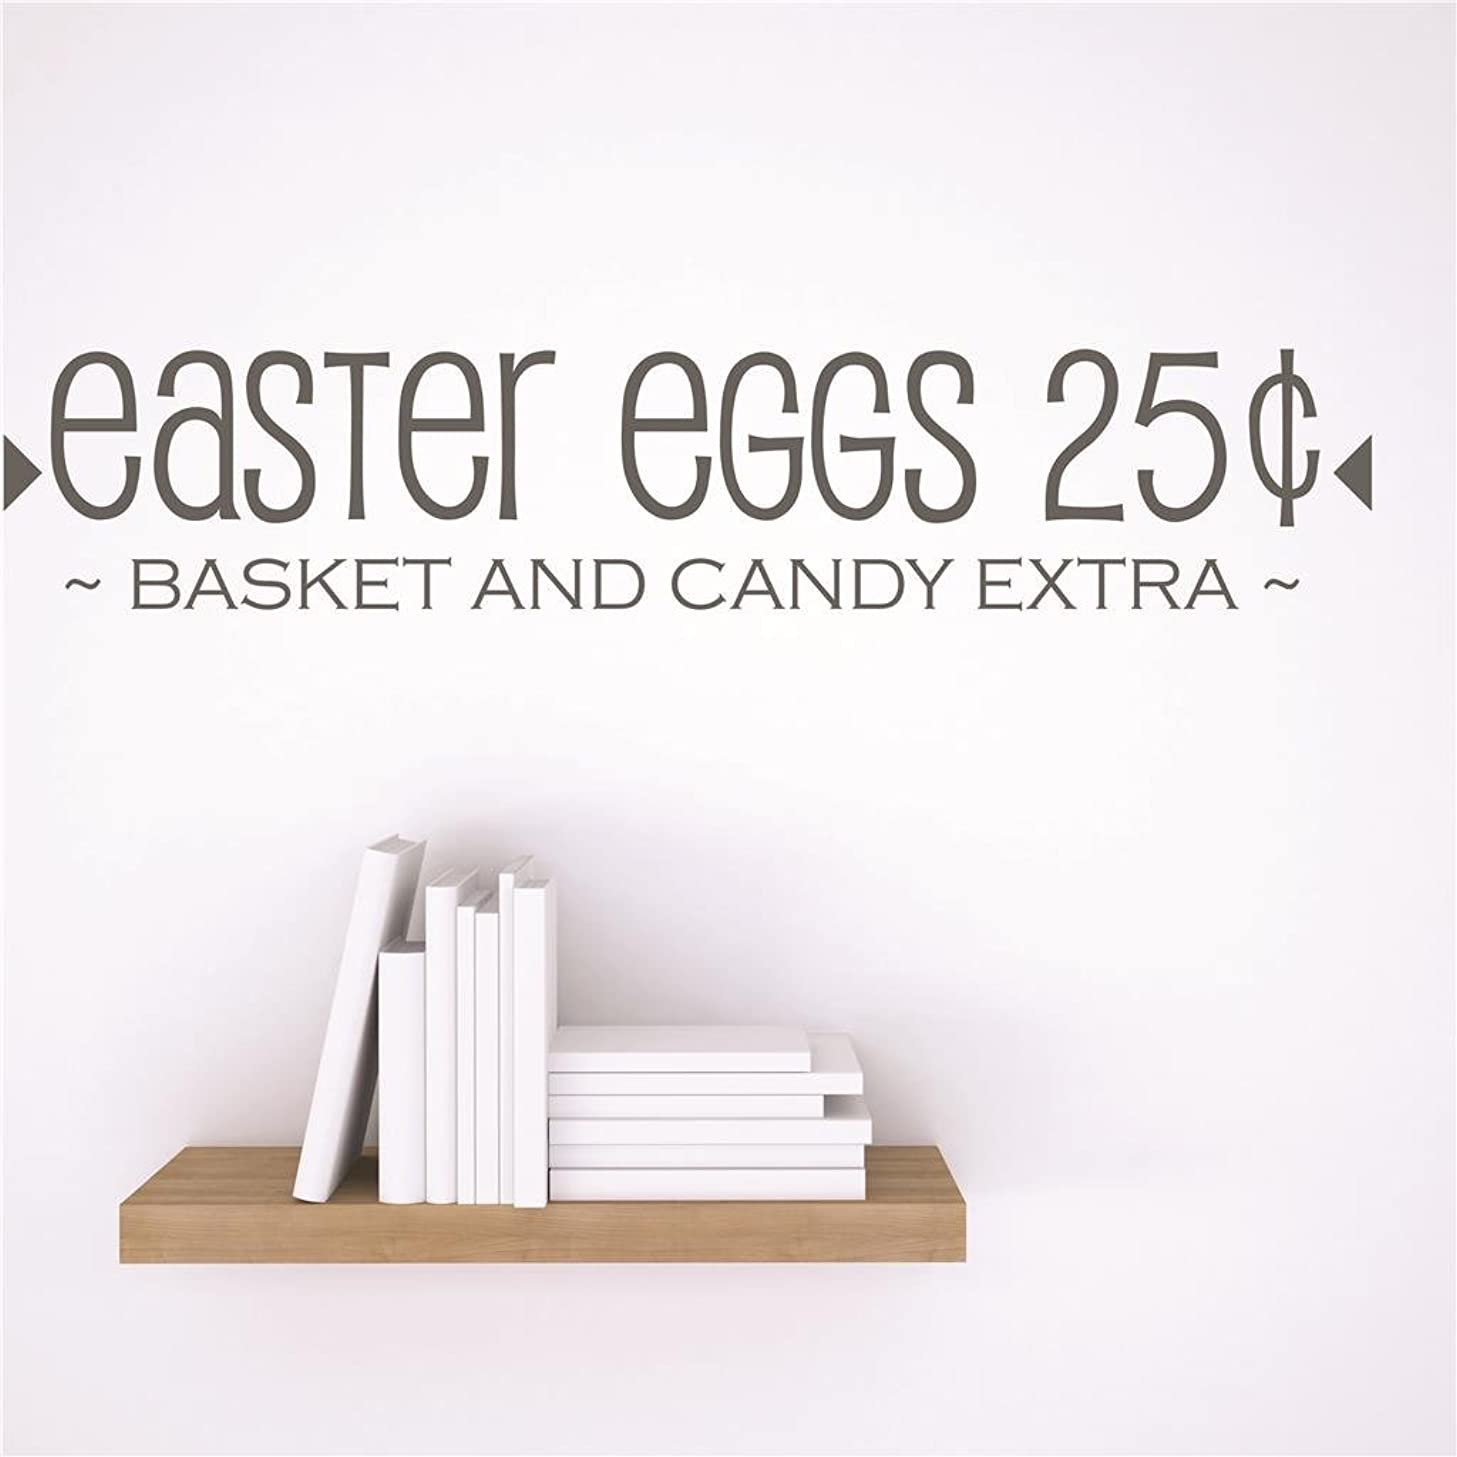 Discounted Sticker Decal : easter eggs 25¢ ~BASKET AND CANDY EXTA~ Holiday Decoration Quote Size: 6 Inches x 30 Inches - 22 Colors Available